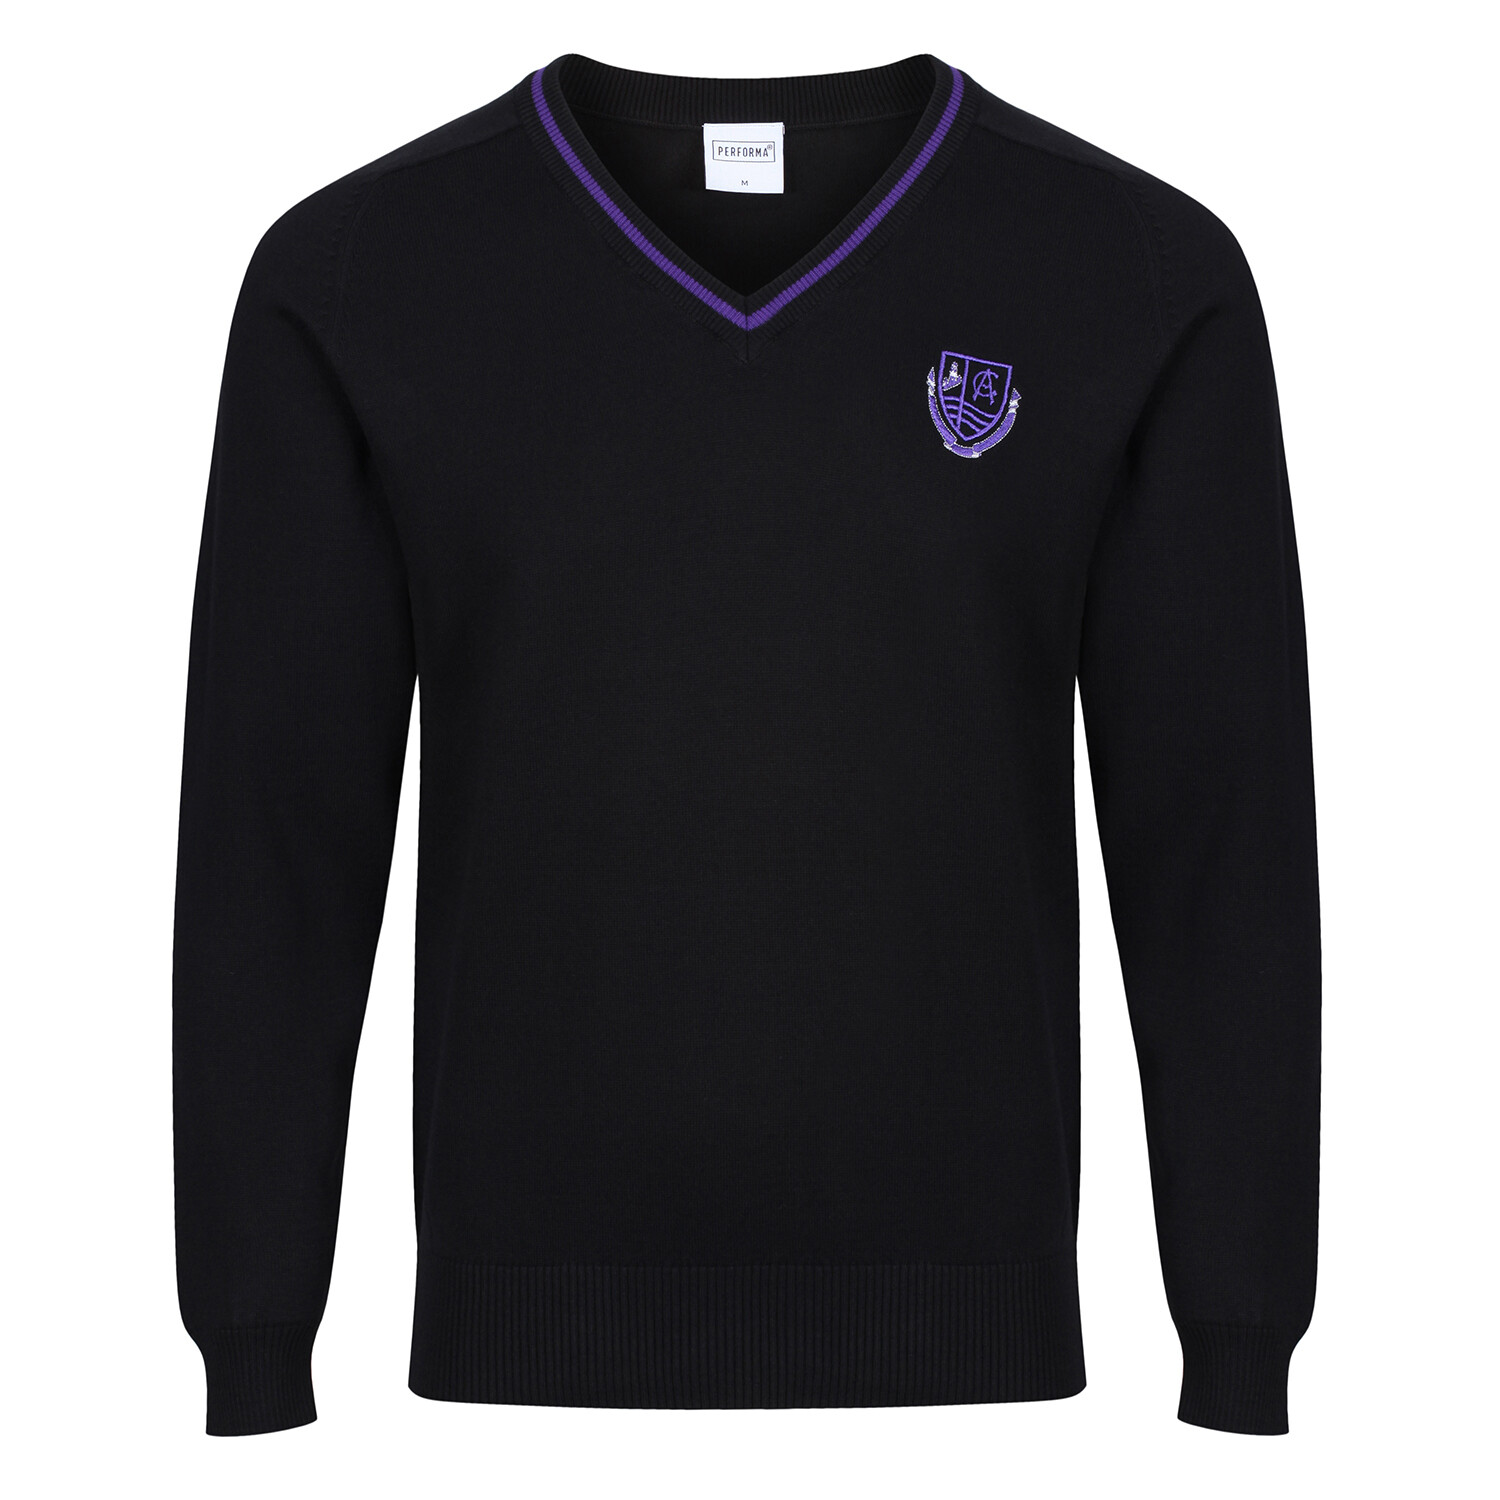 Clydeview Academy Knitted V-neck with stripe